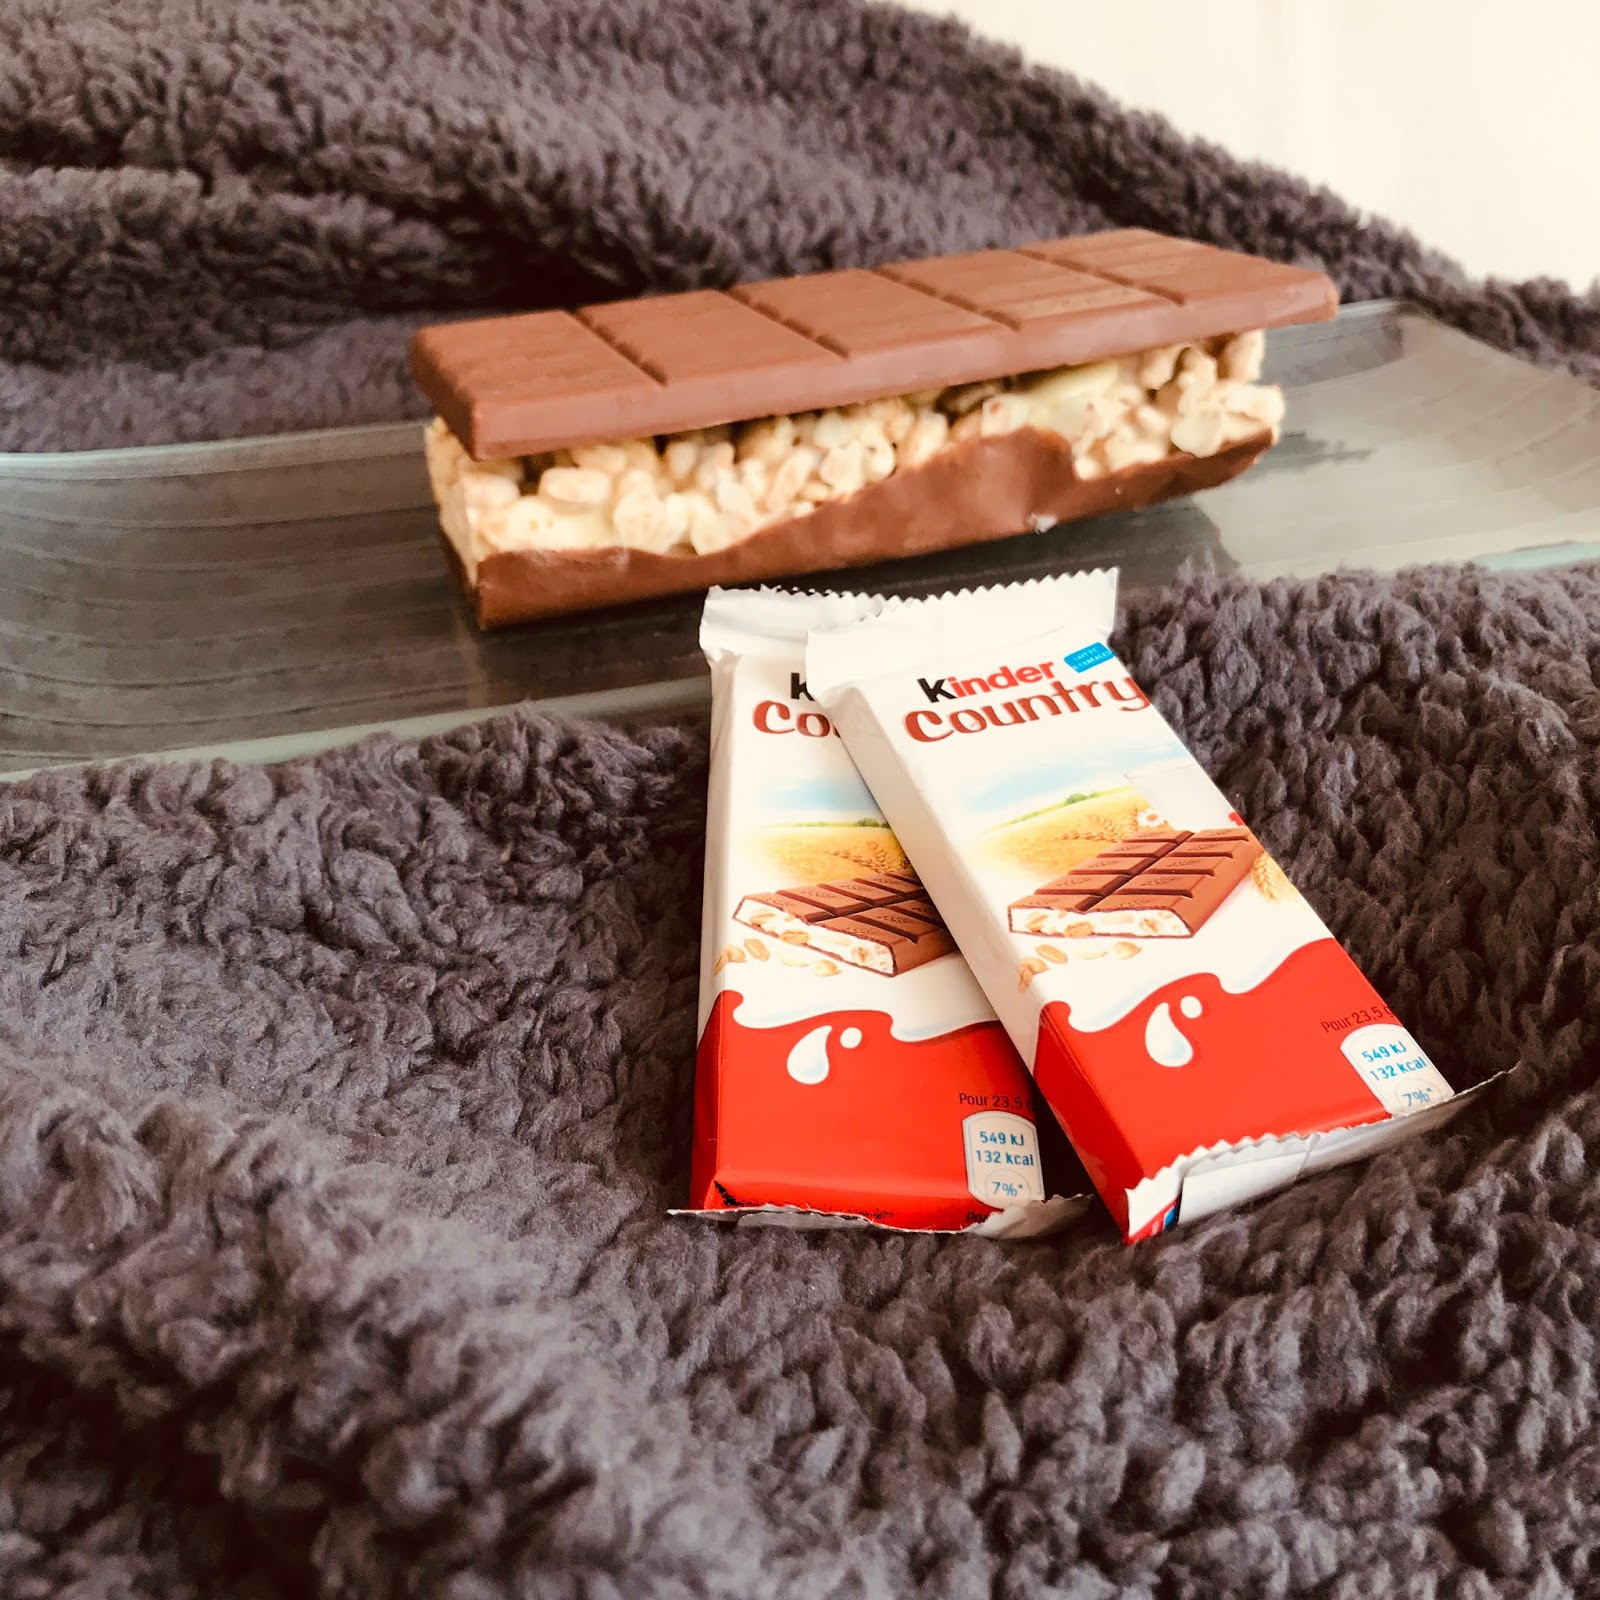 Kinder Country maison ♡